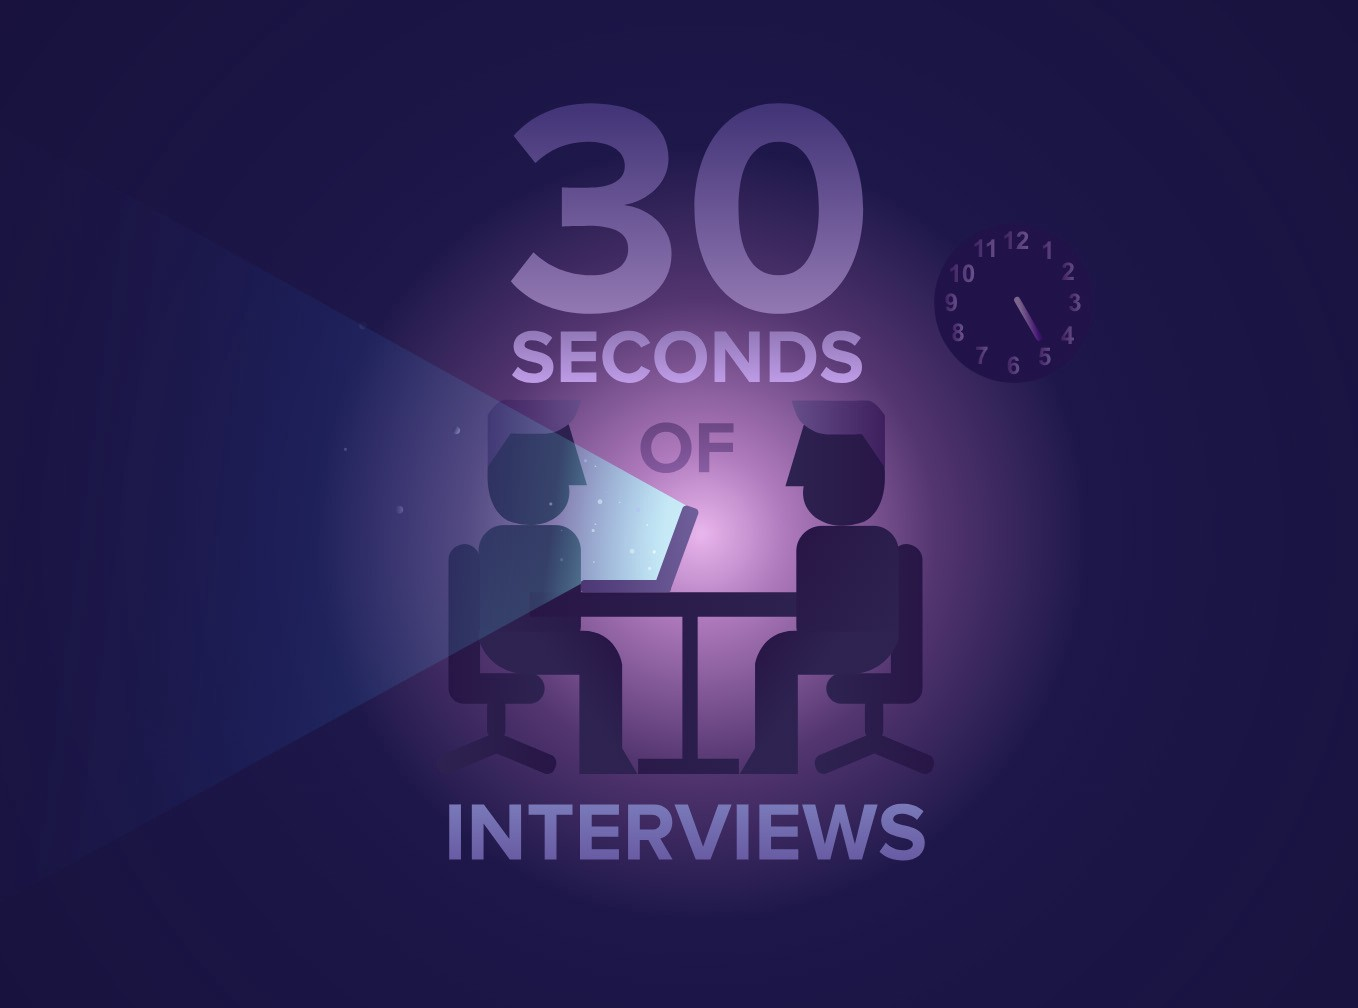 /prepare-for-you-next-interview-with-30-seconds-of-interviews-fcc6c400826b feature image